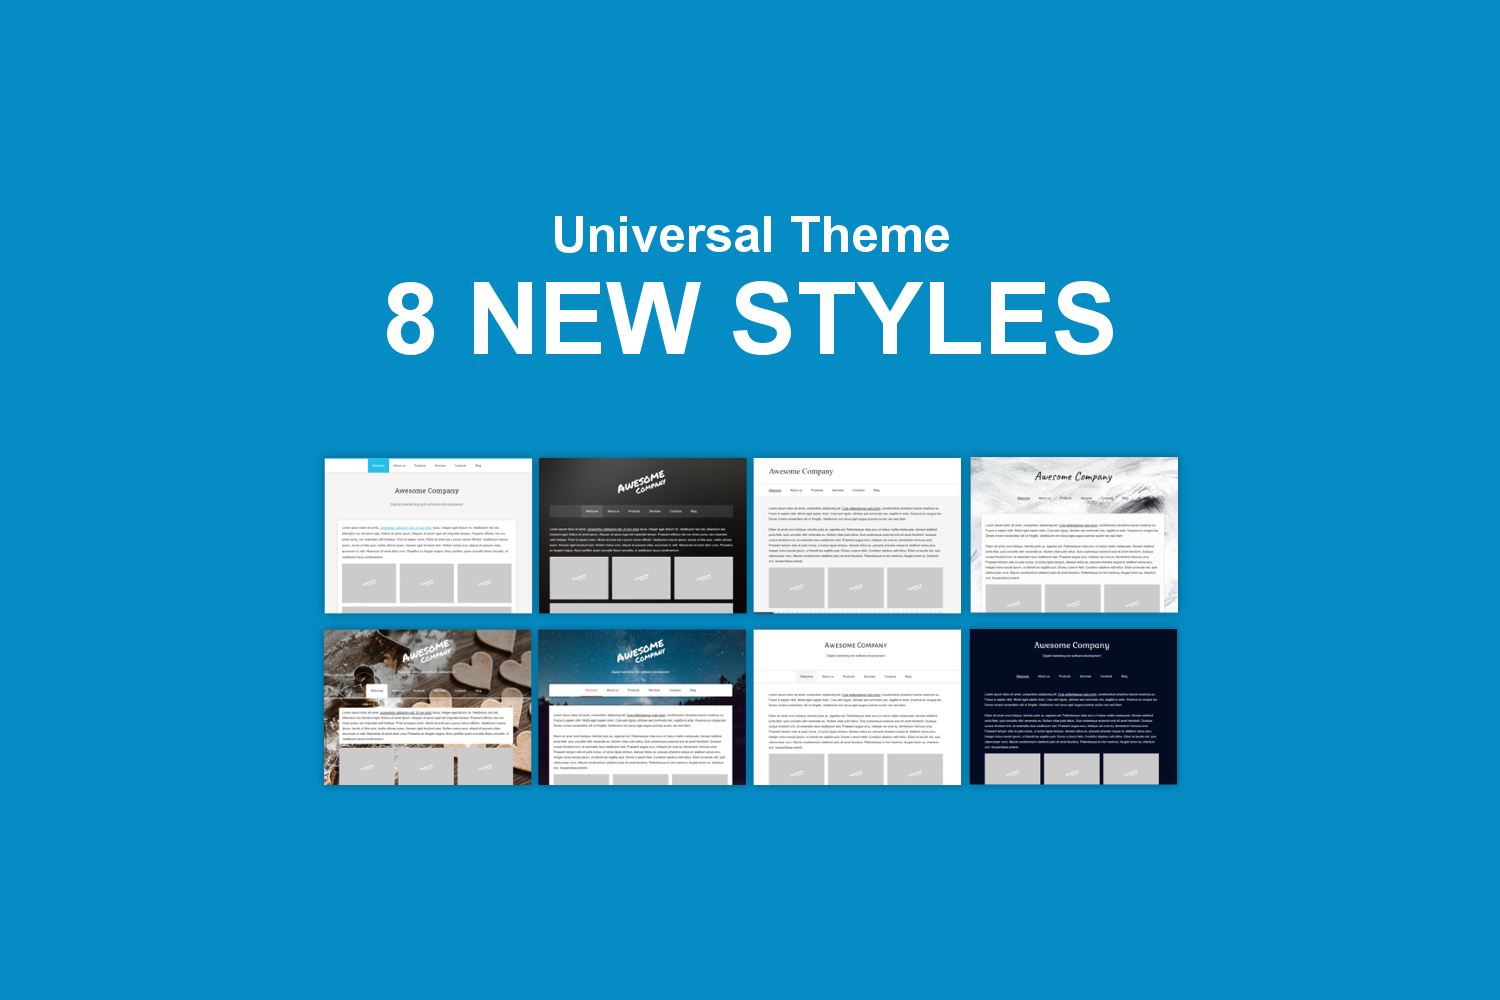 8 new styles for the Universal theme